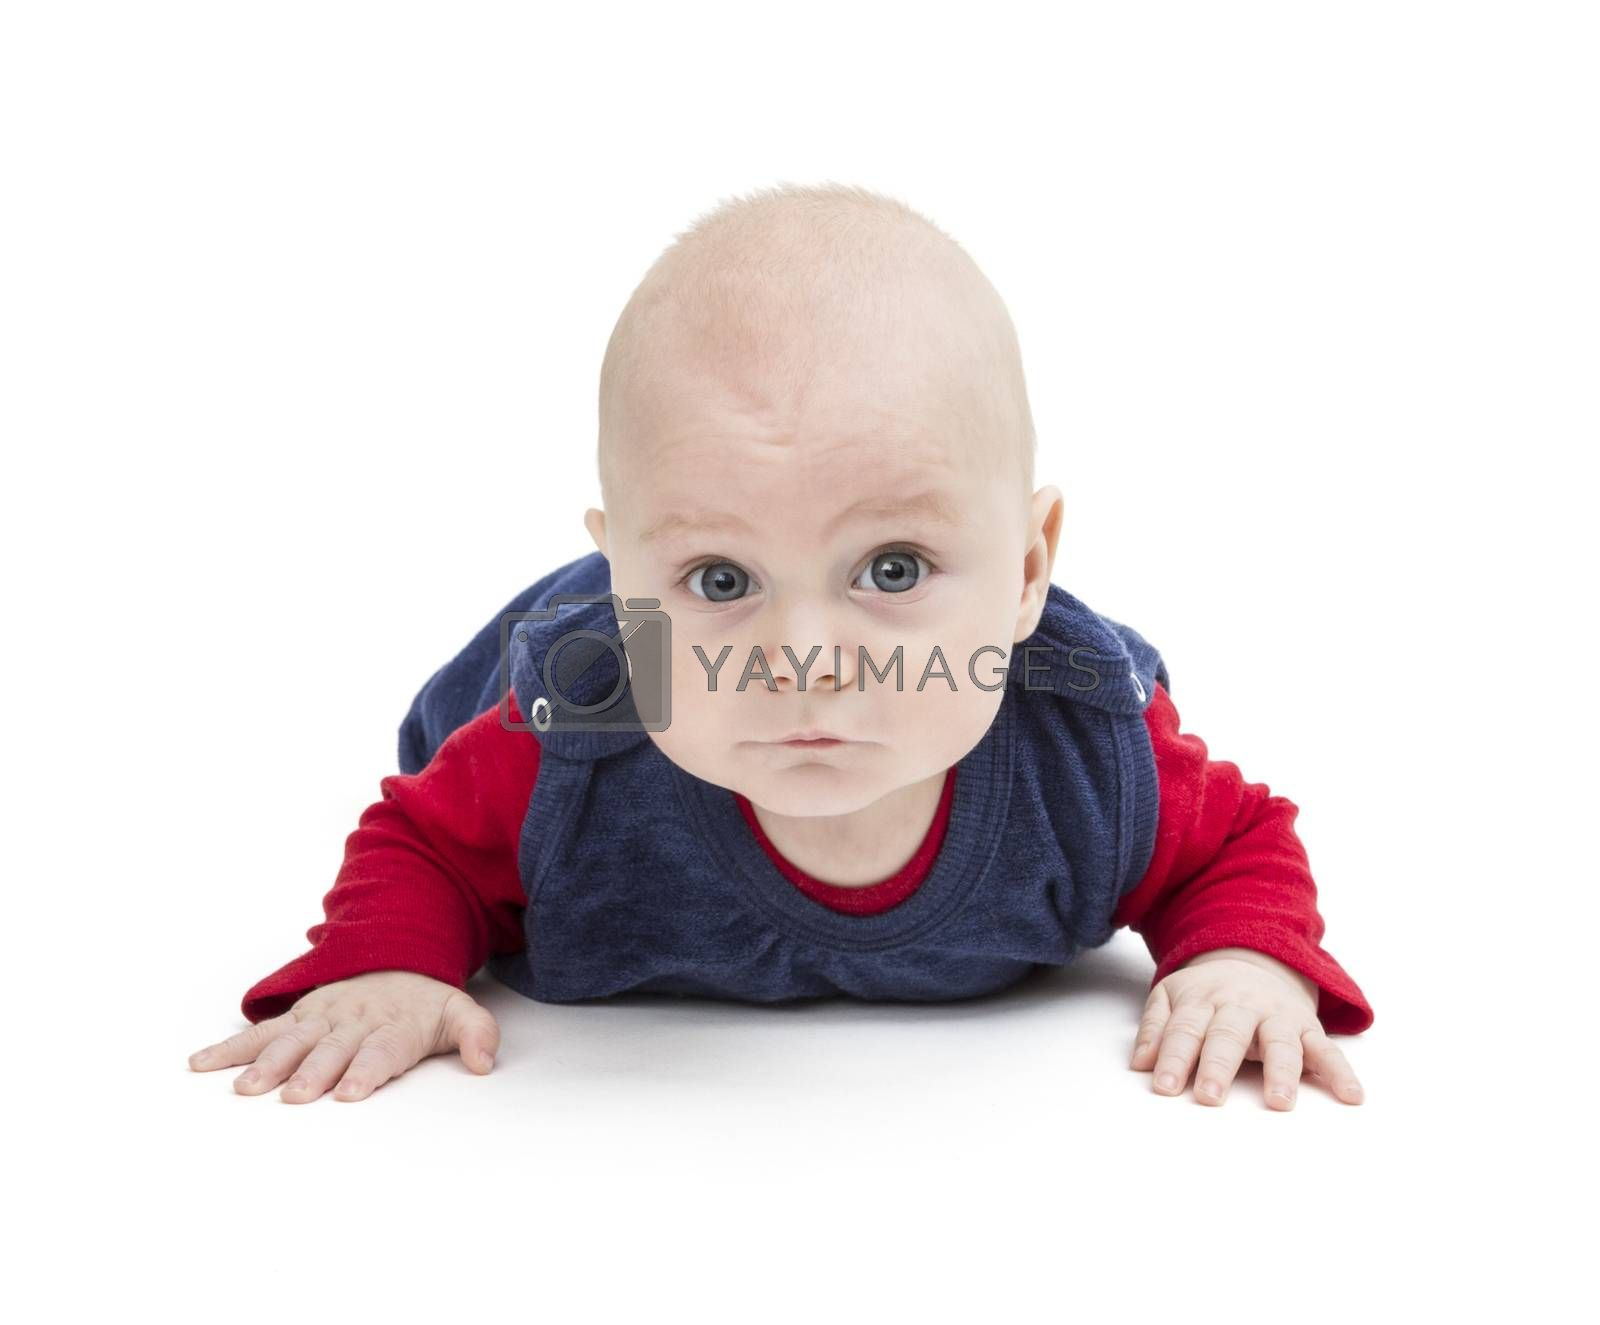 crawling baby looking into camera. isolated on white background